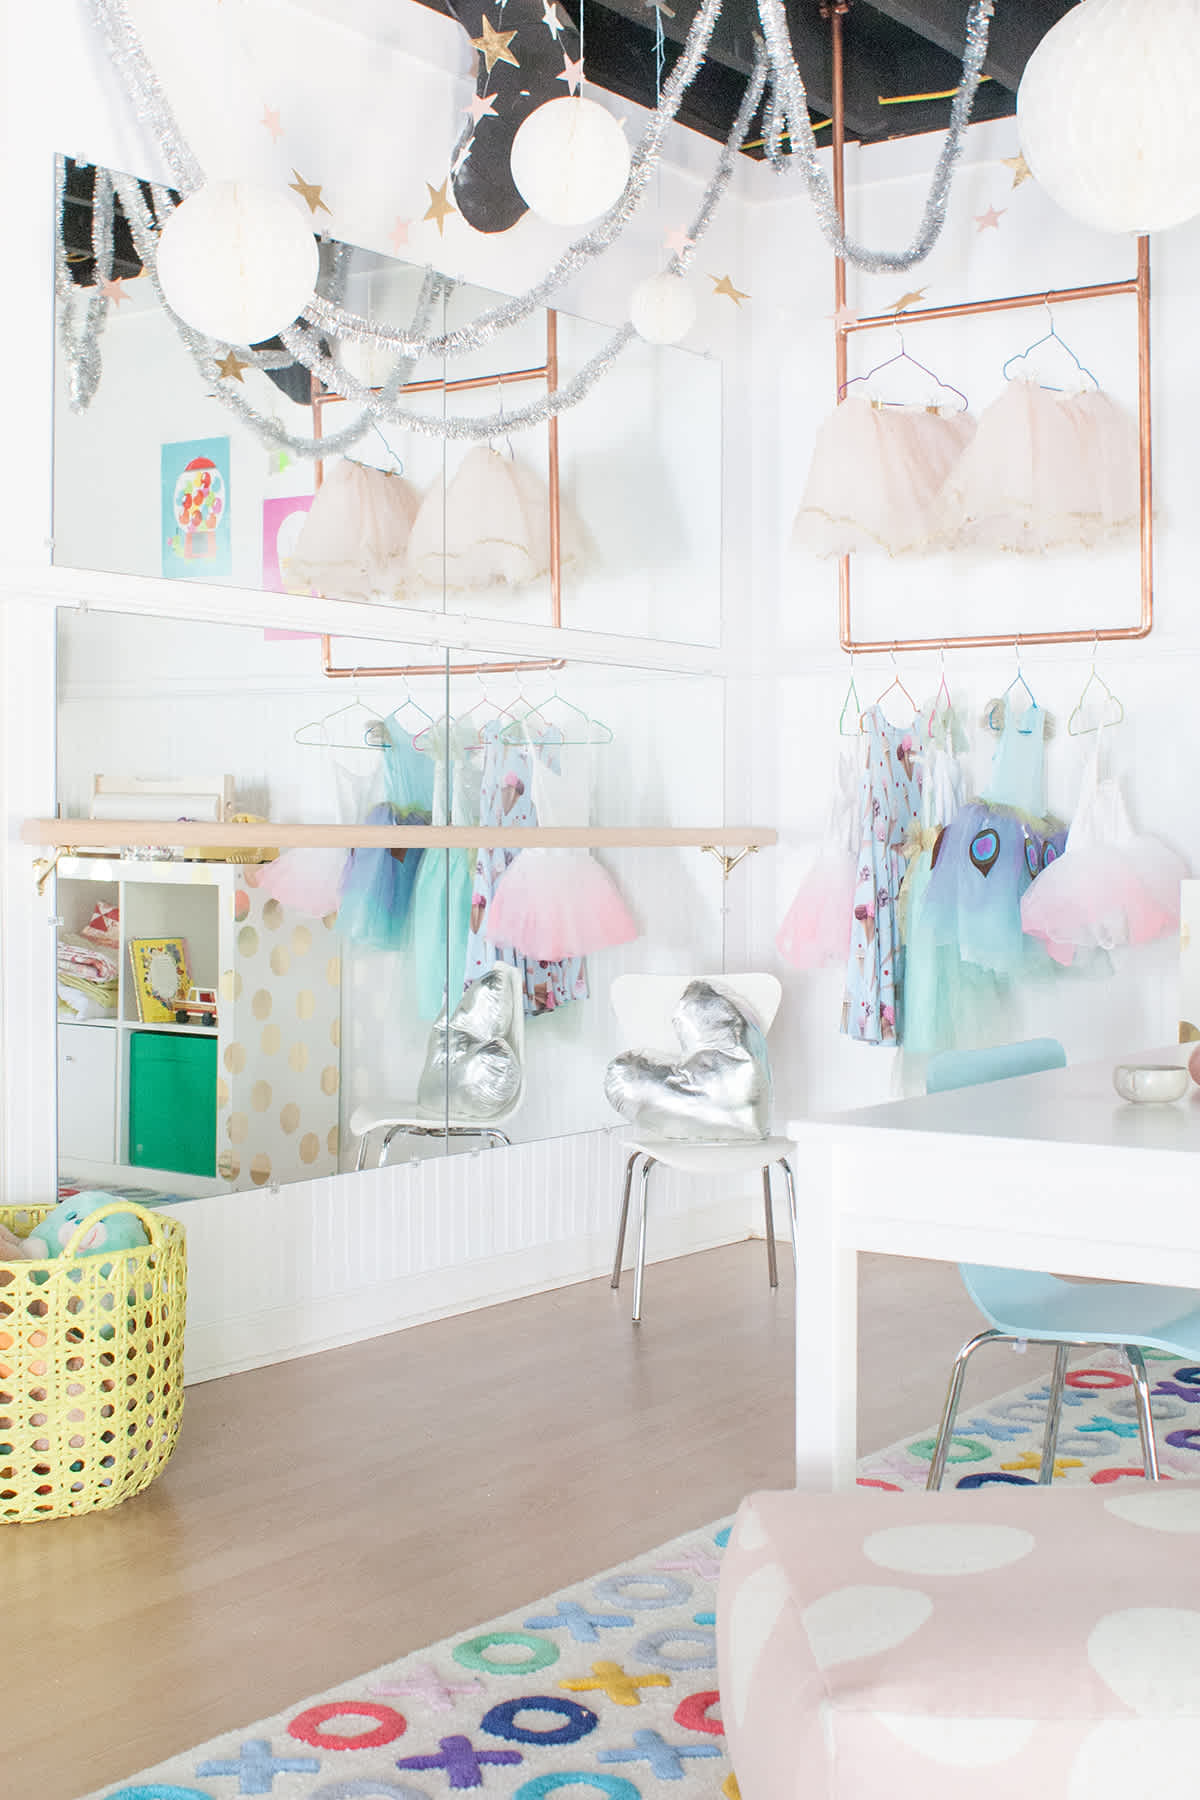 how to make a playroom ballet studio